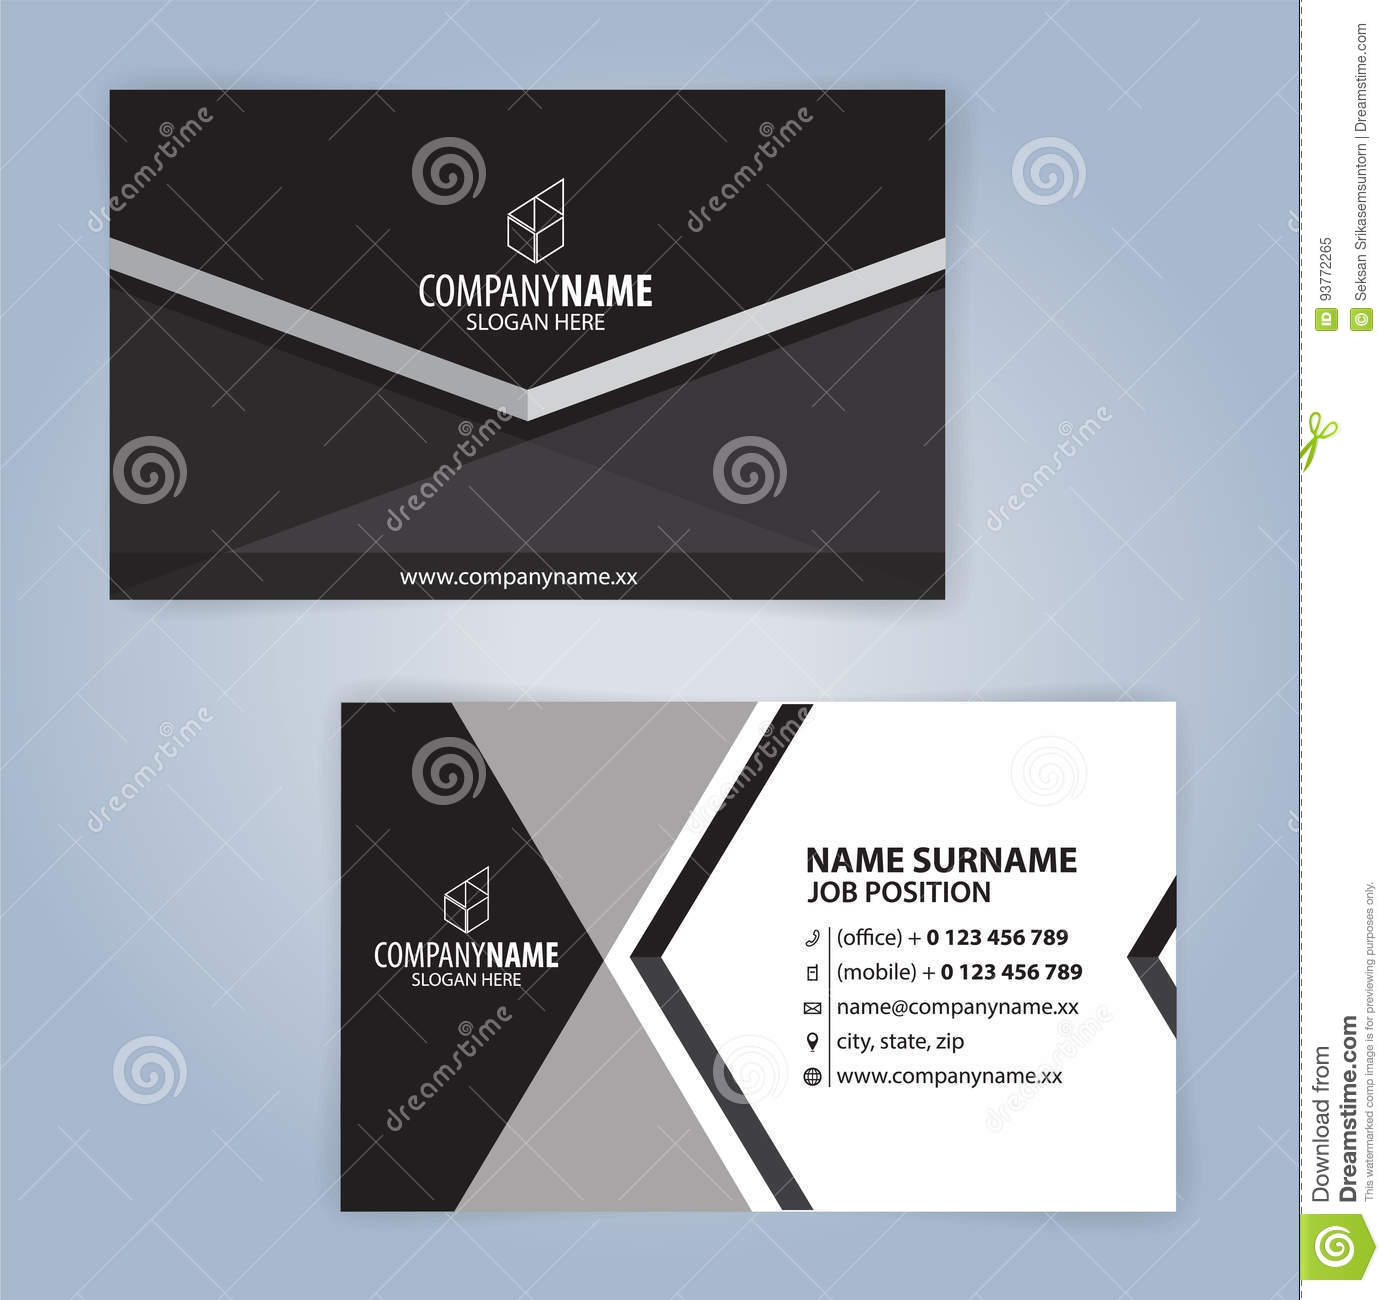 Download Calibre Moderne Noir Et Blanc De Carte Visite Professionnelle Illustration Vecteur